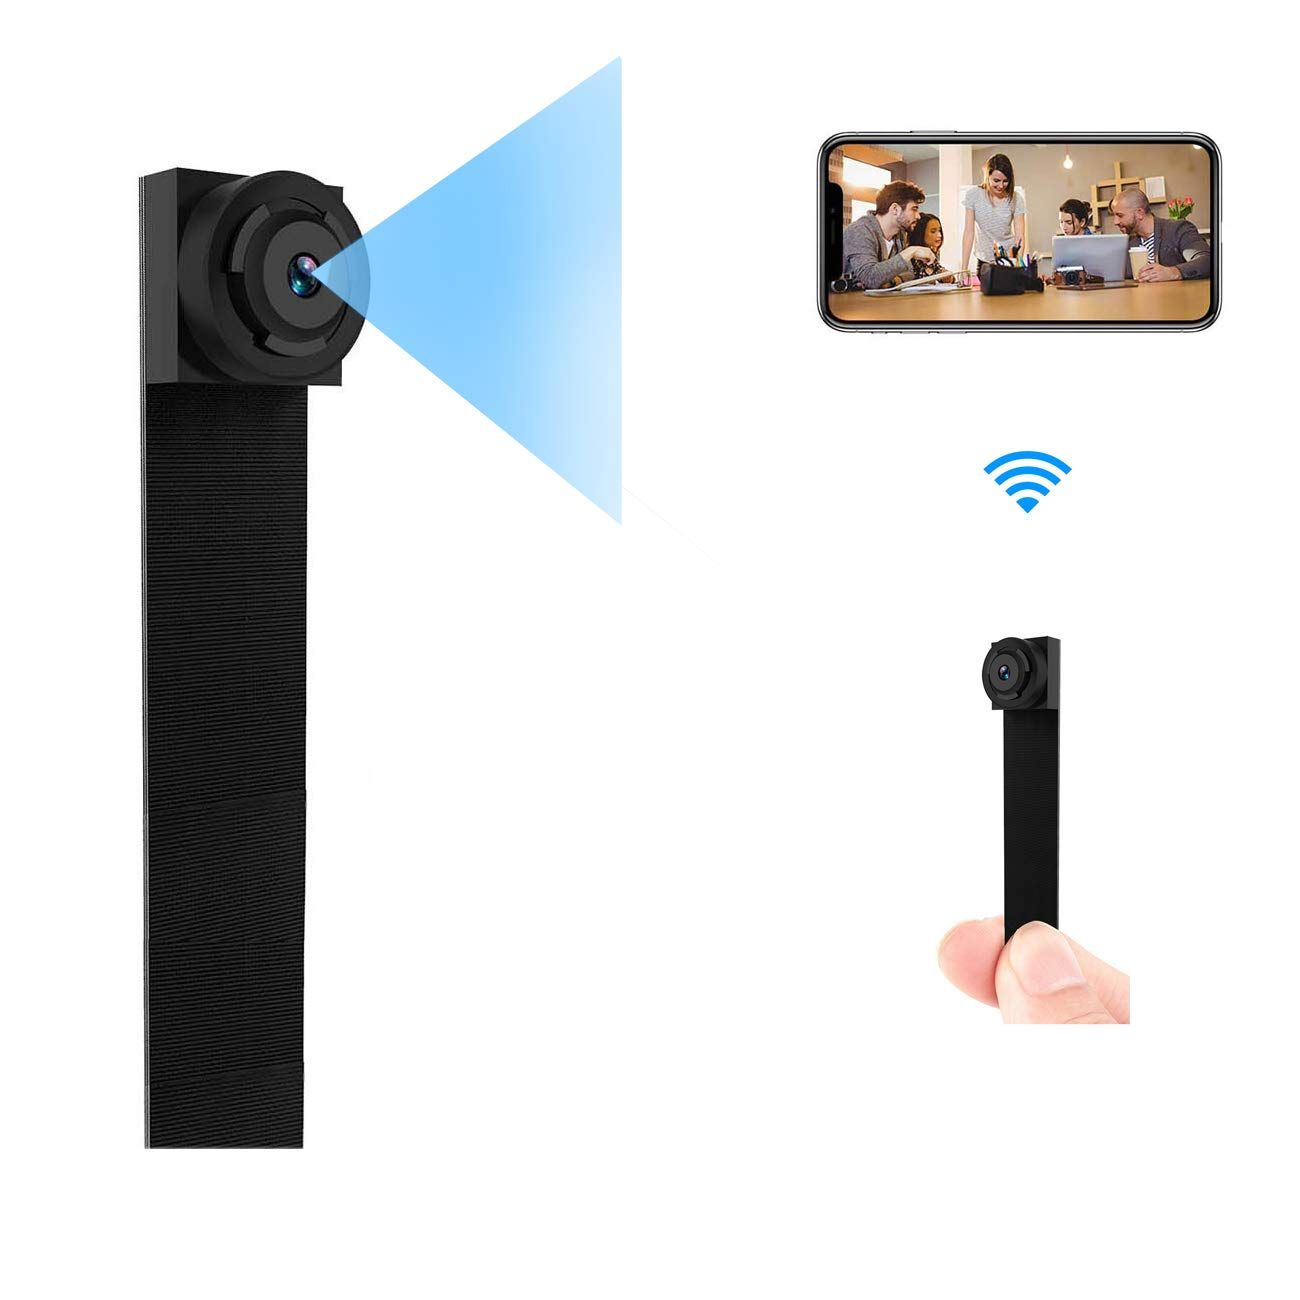 Cam Mall WiFi Camera, Nanny Cam Wireless Security Camera Motion Detection Remote View for iPhone/Android Device Home Surveillance Video Recorder (Black)